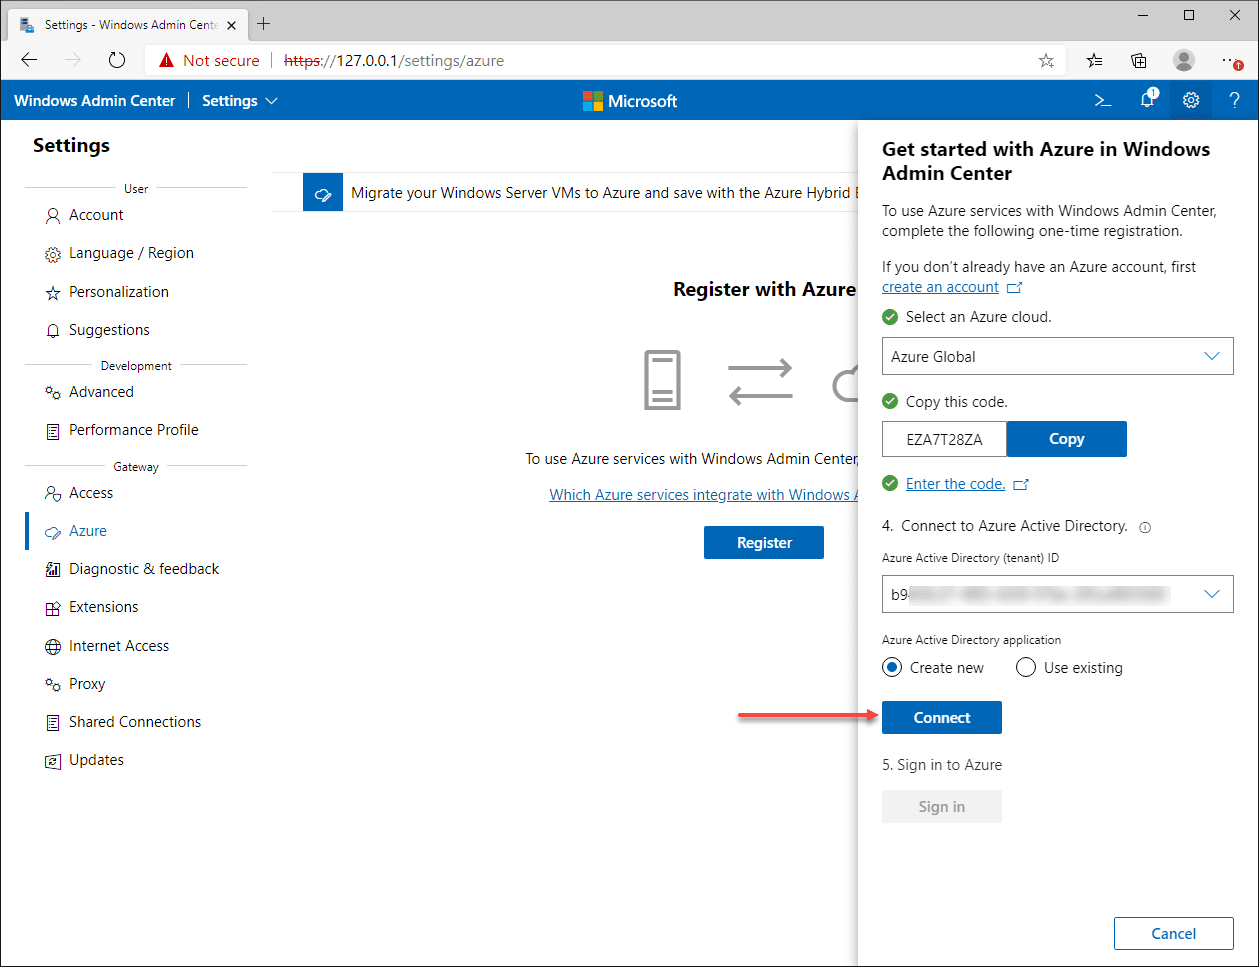 Connect to Azure Active Directory